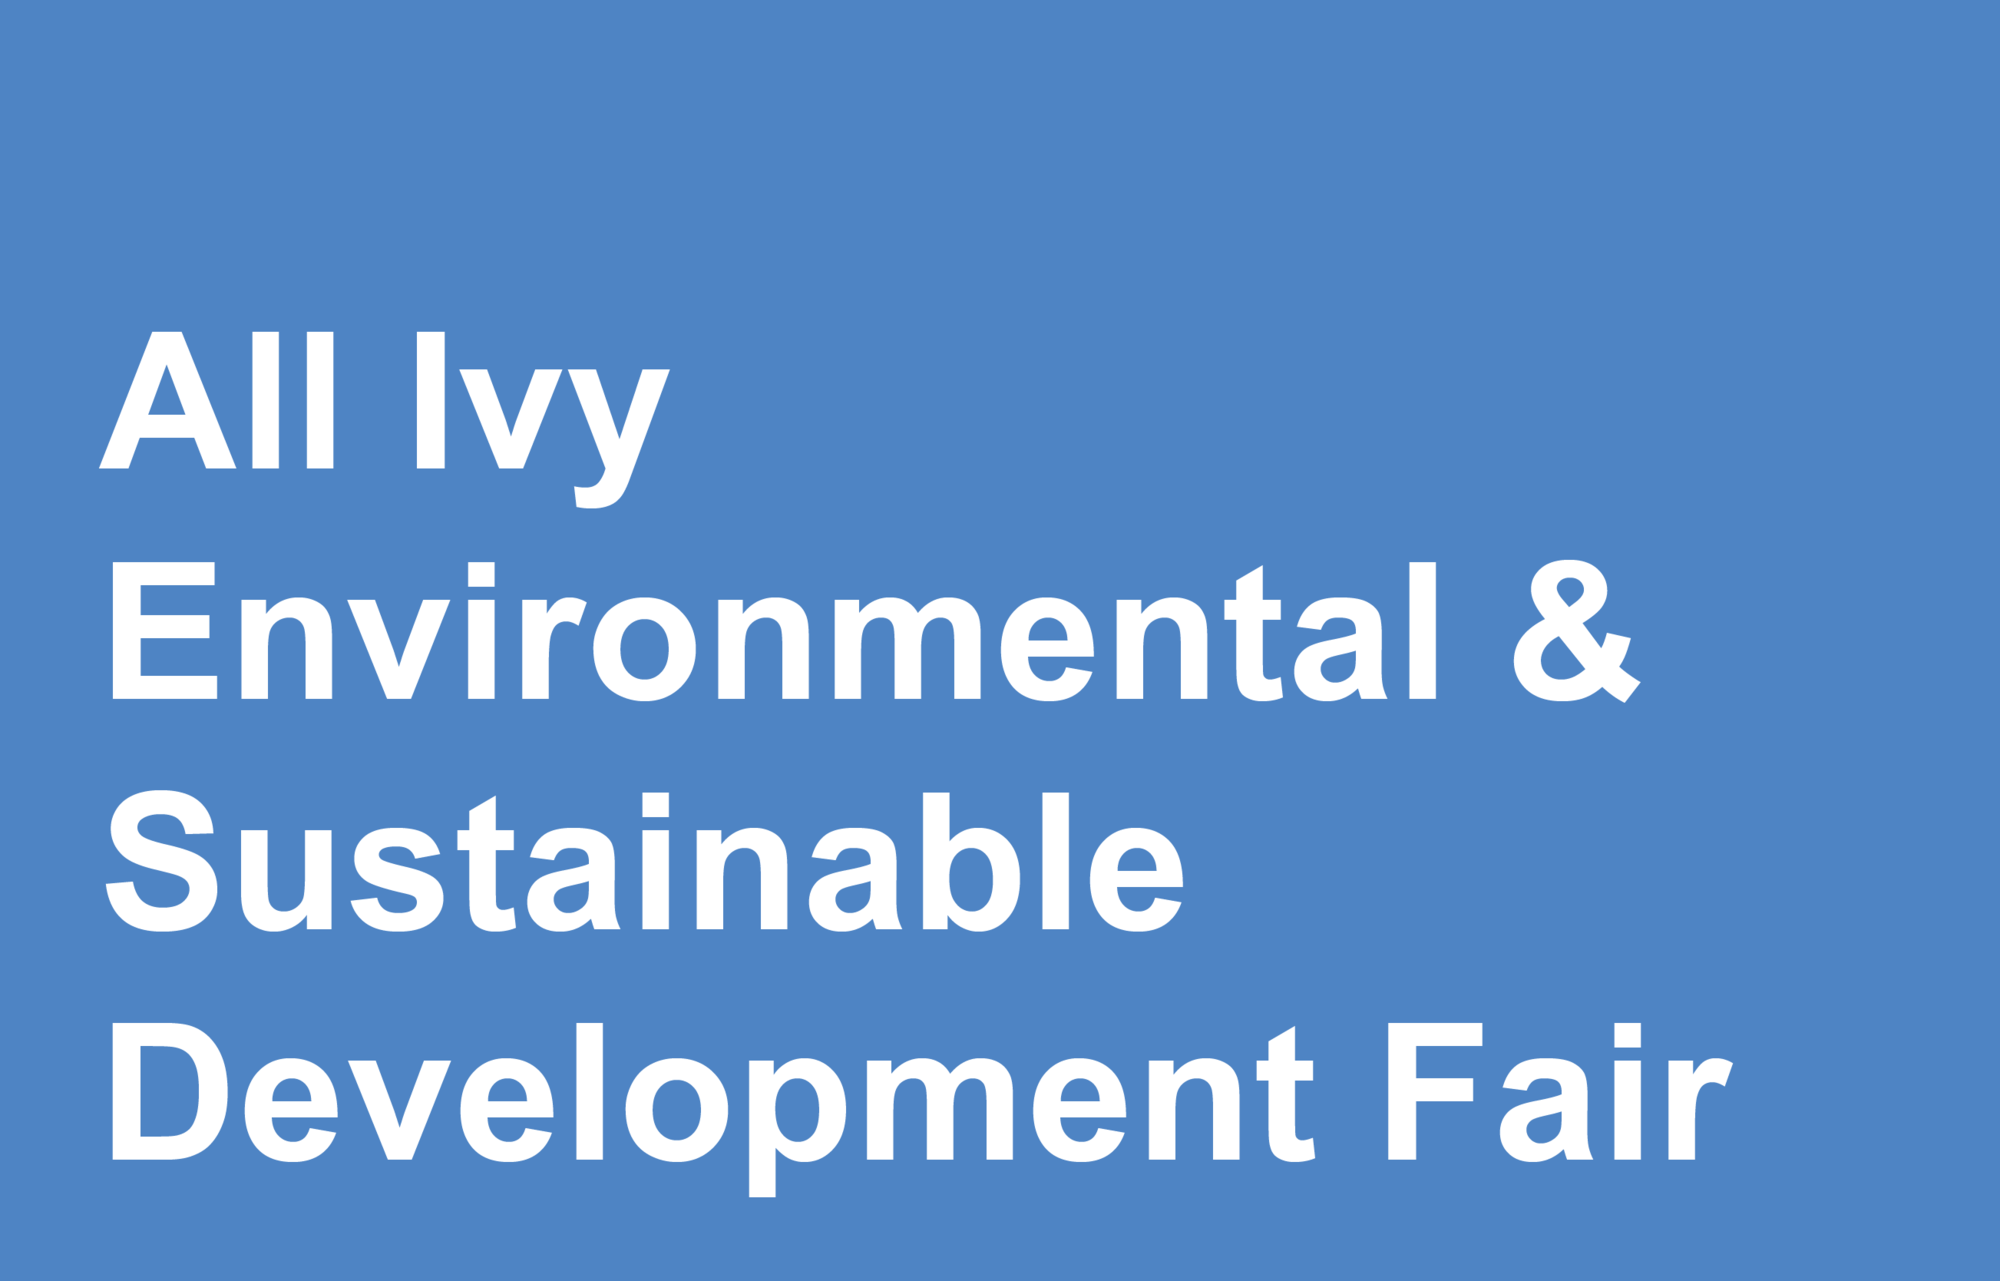 All Ivy Environmental & Sustainable Development Fair